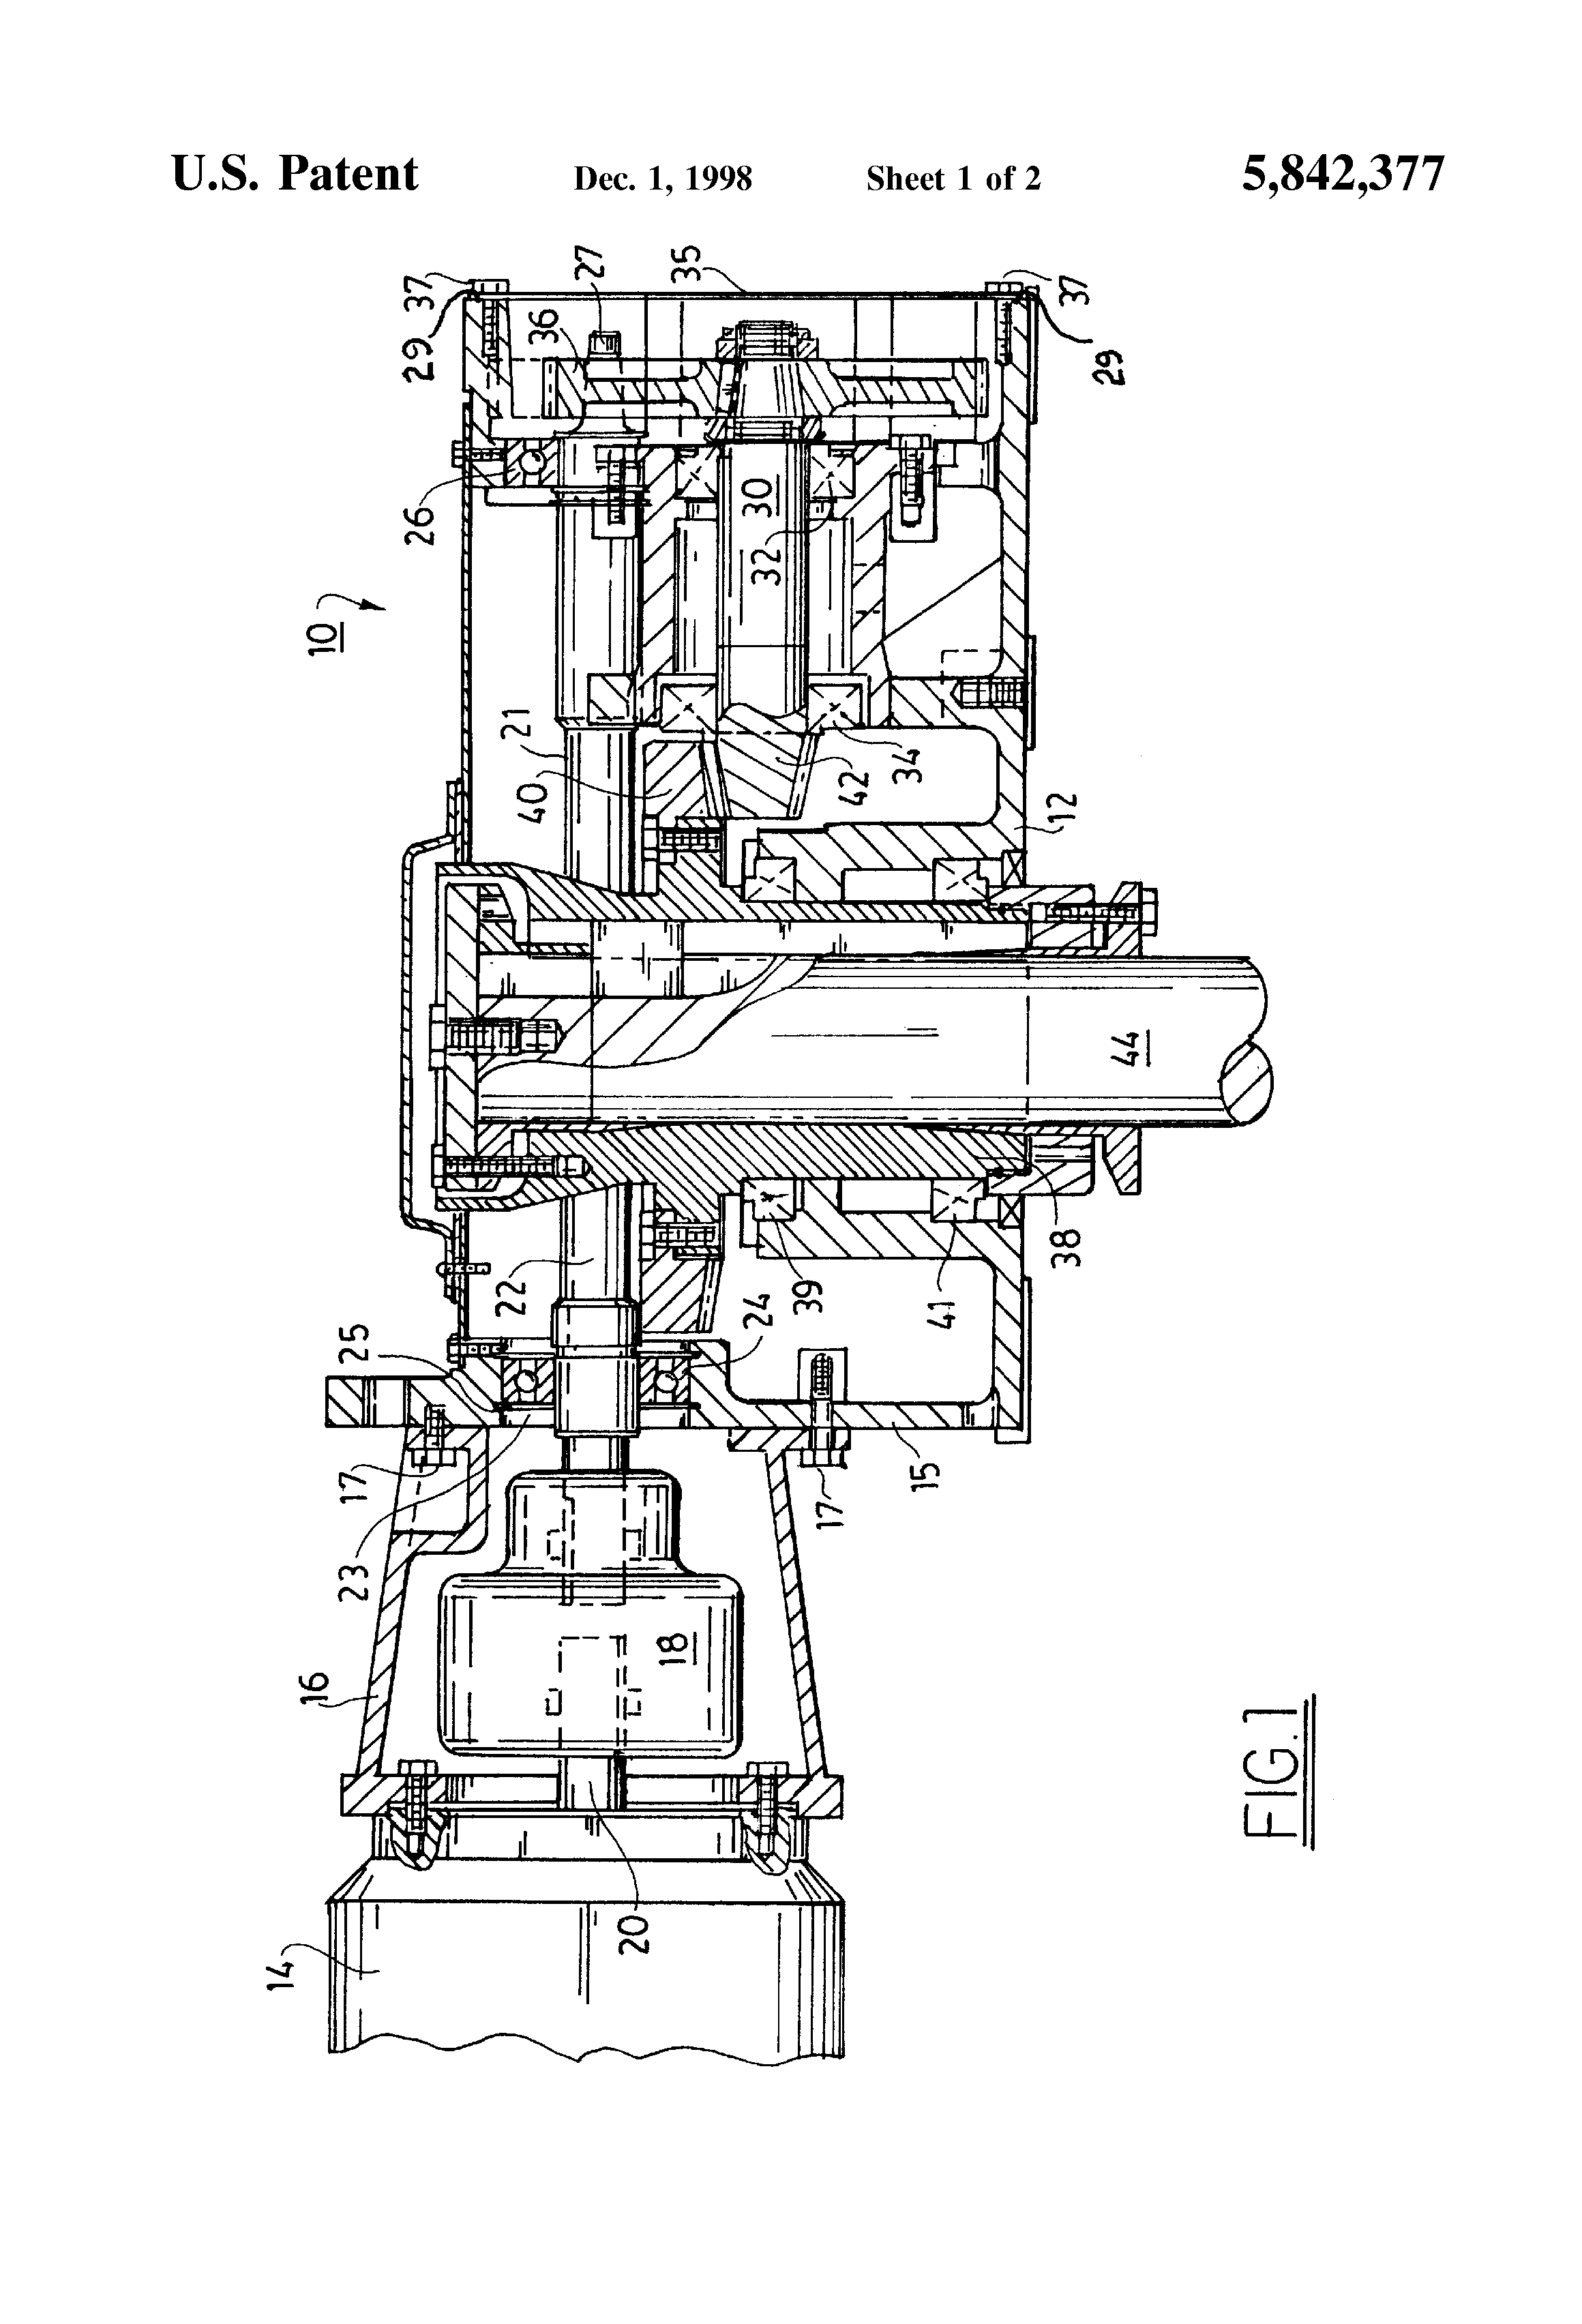 Patent US5842377 - Mixer gearbox assembly having a cross-shaft